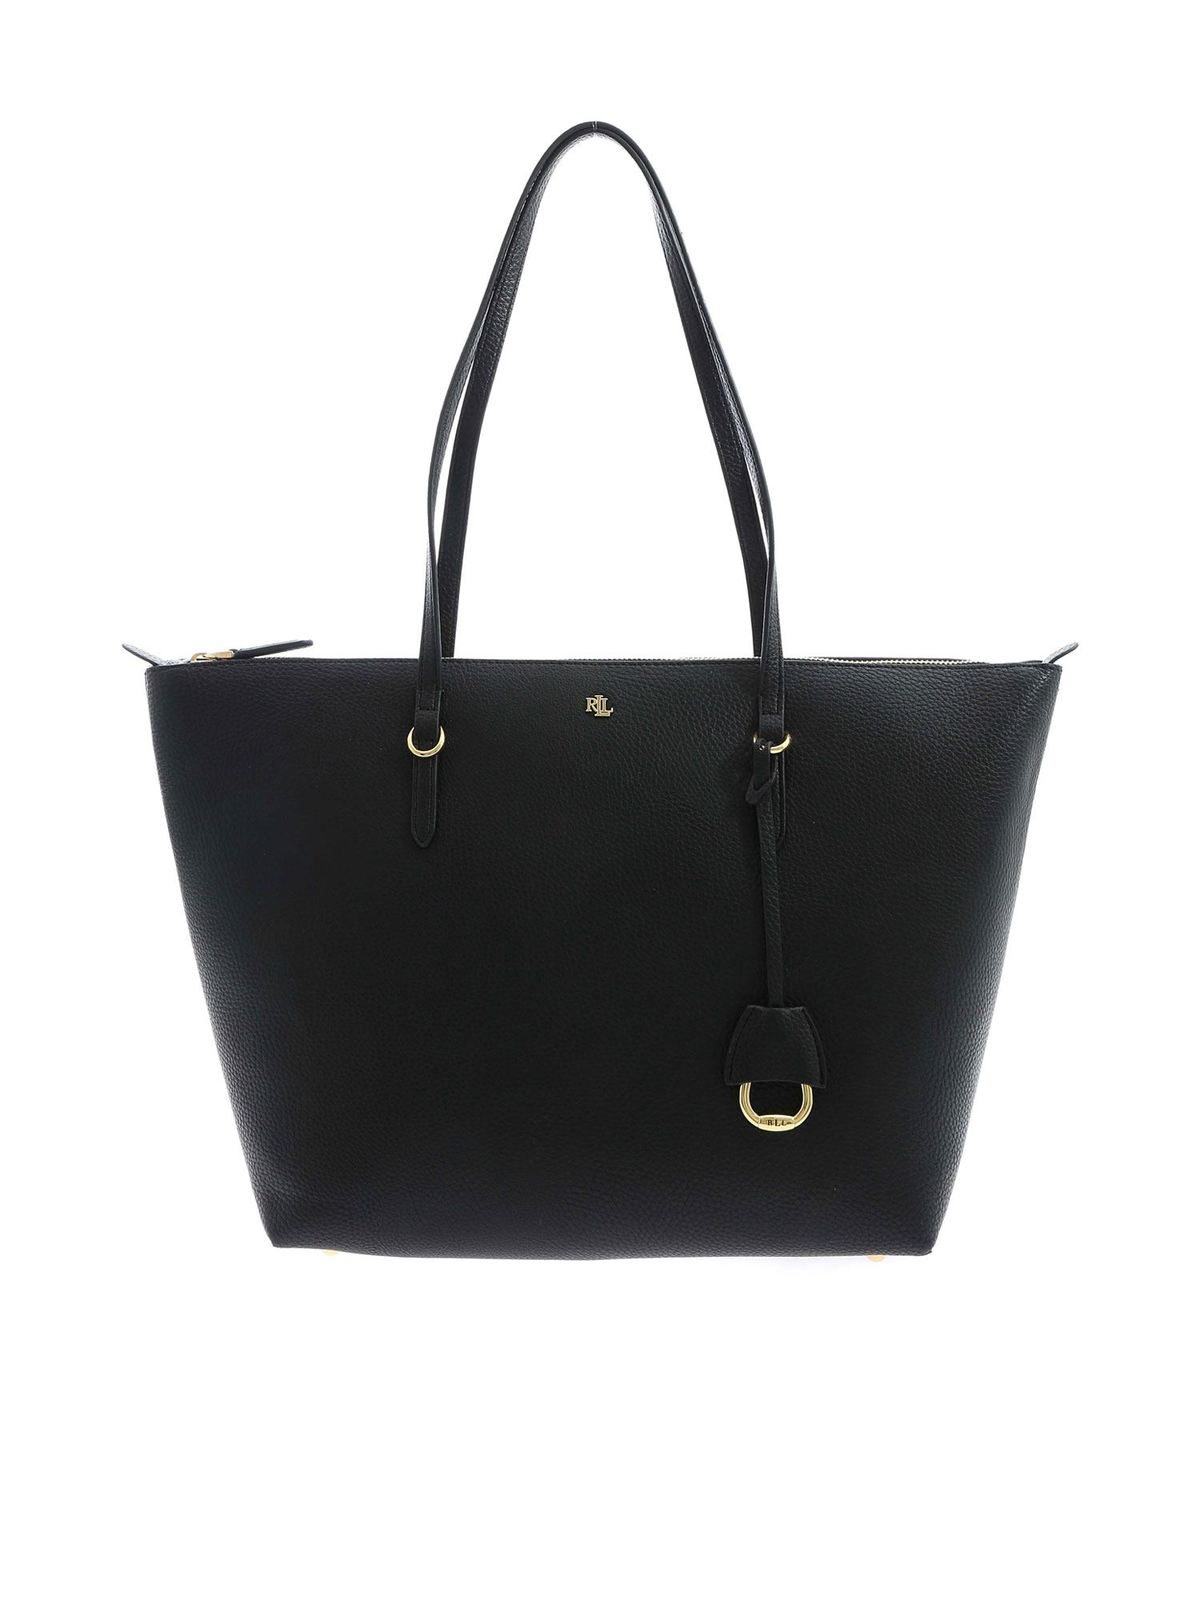 Lauren Ralph Lauren GOLDEN LOGO SHOPPER IN BLACK